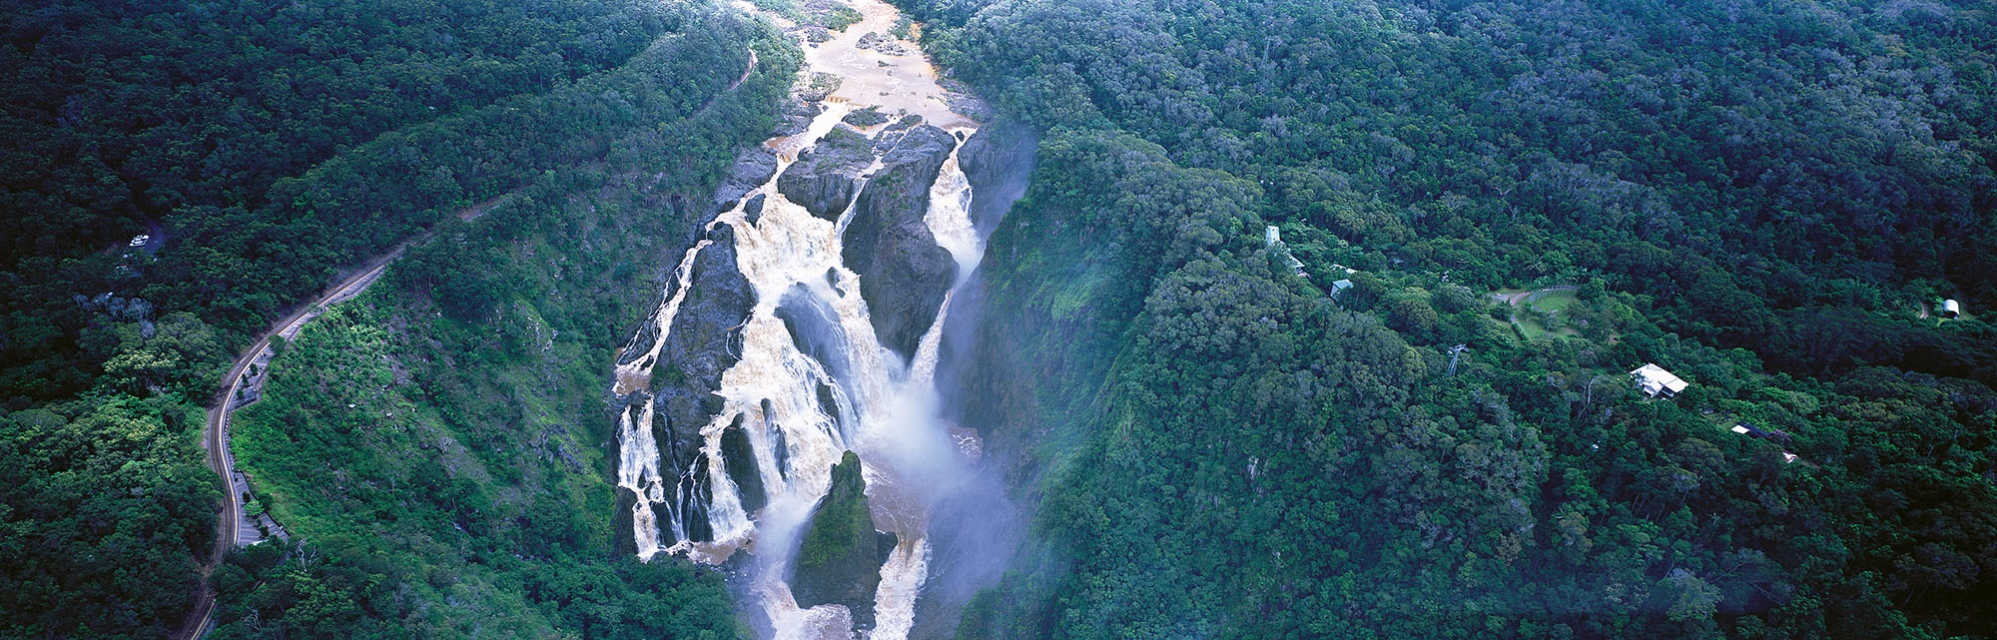 barron-falls-river-water-fall-rainforest-cairns-buy-limited-edition-photography-ric-steininger-gallery-Barron-Falls-Train